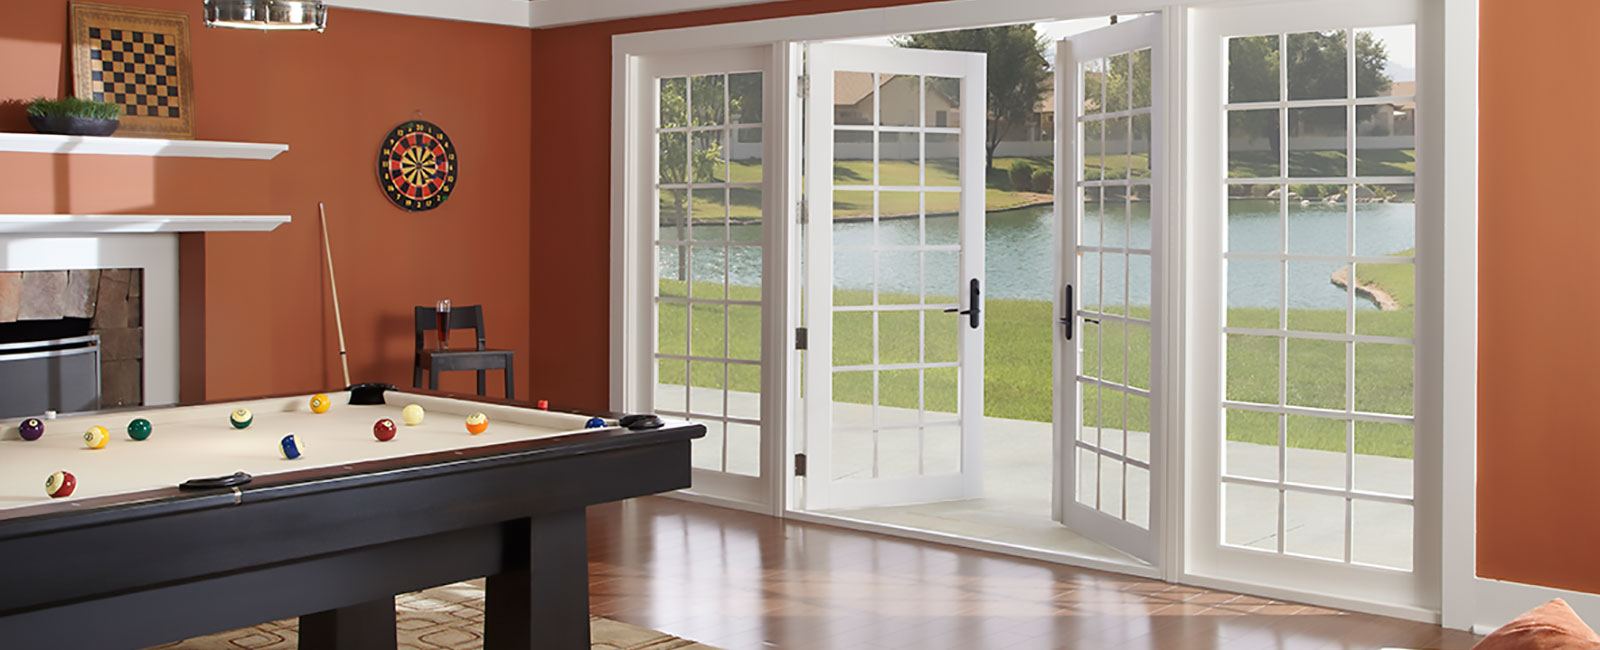 Impact Resistant French Doors in a Billards Room